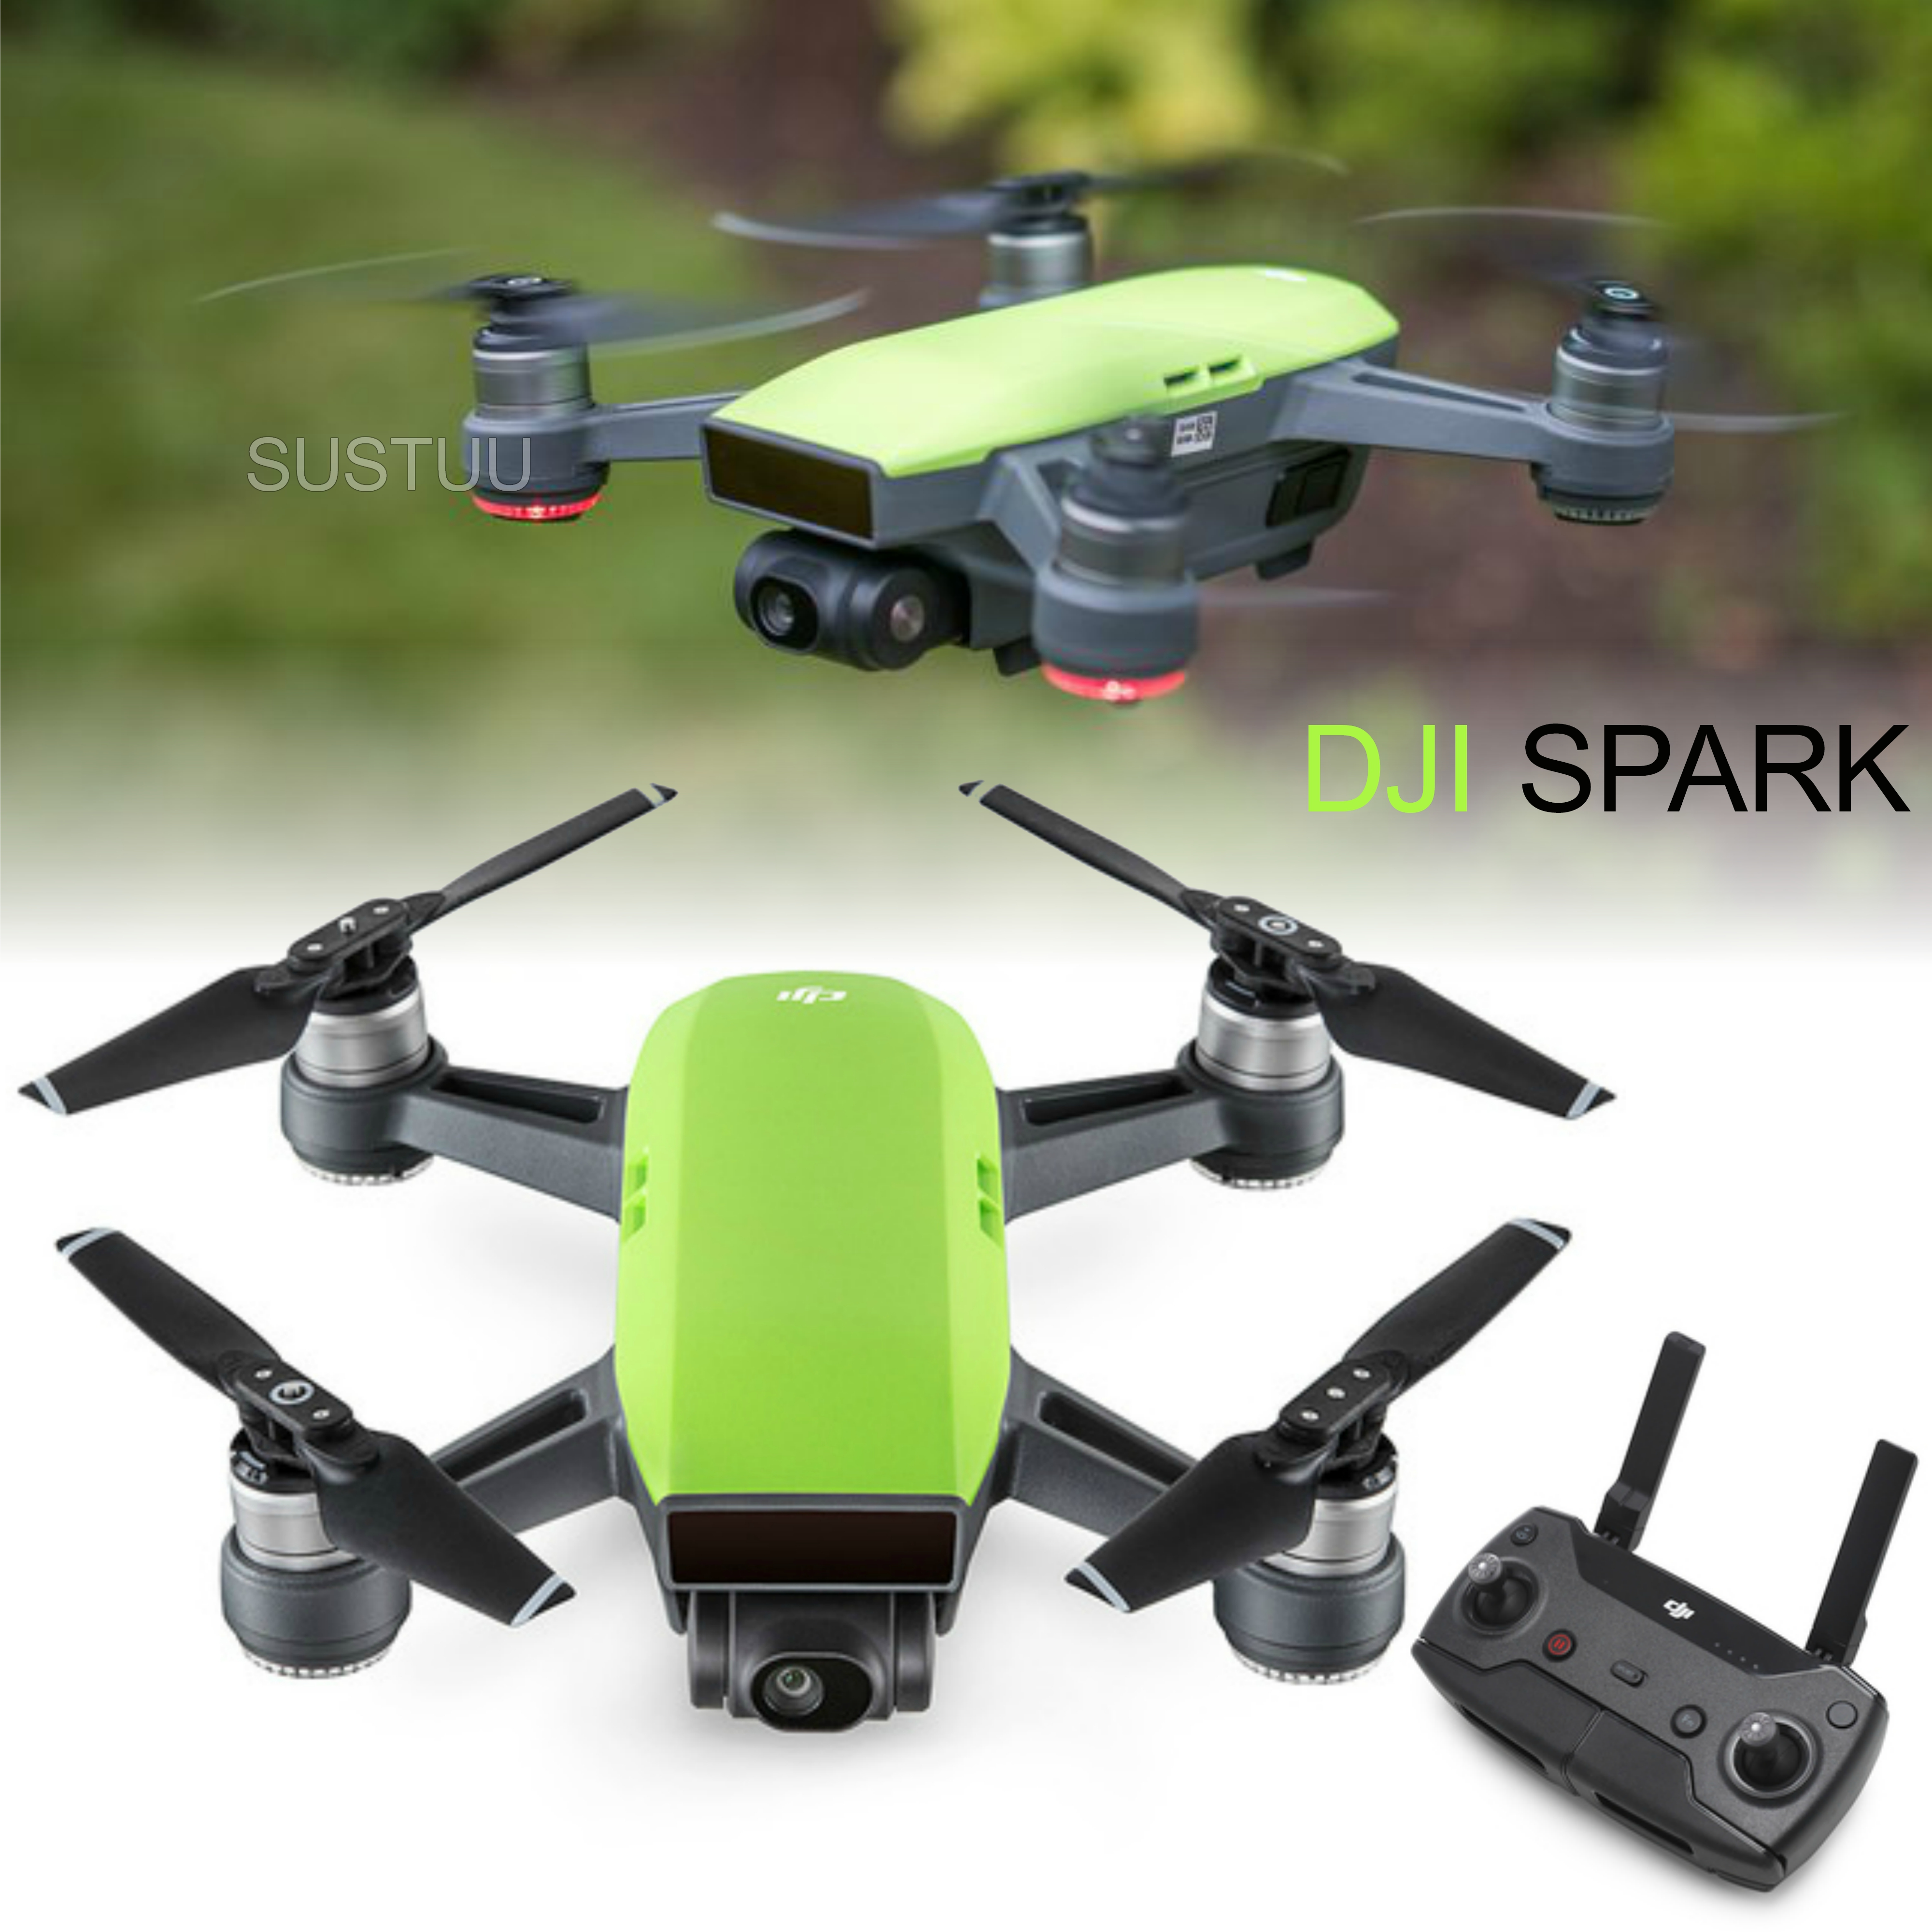 DJI Spark Quadcopter Mini Smart Camera Drone|Open Sky|1080p HD 12 MP|CP.PT.000749|M Green